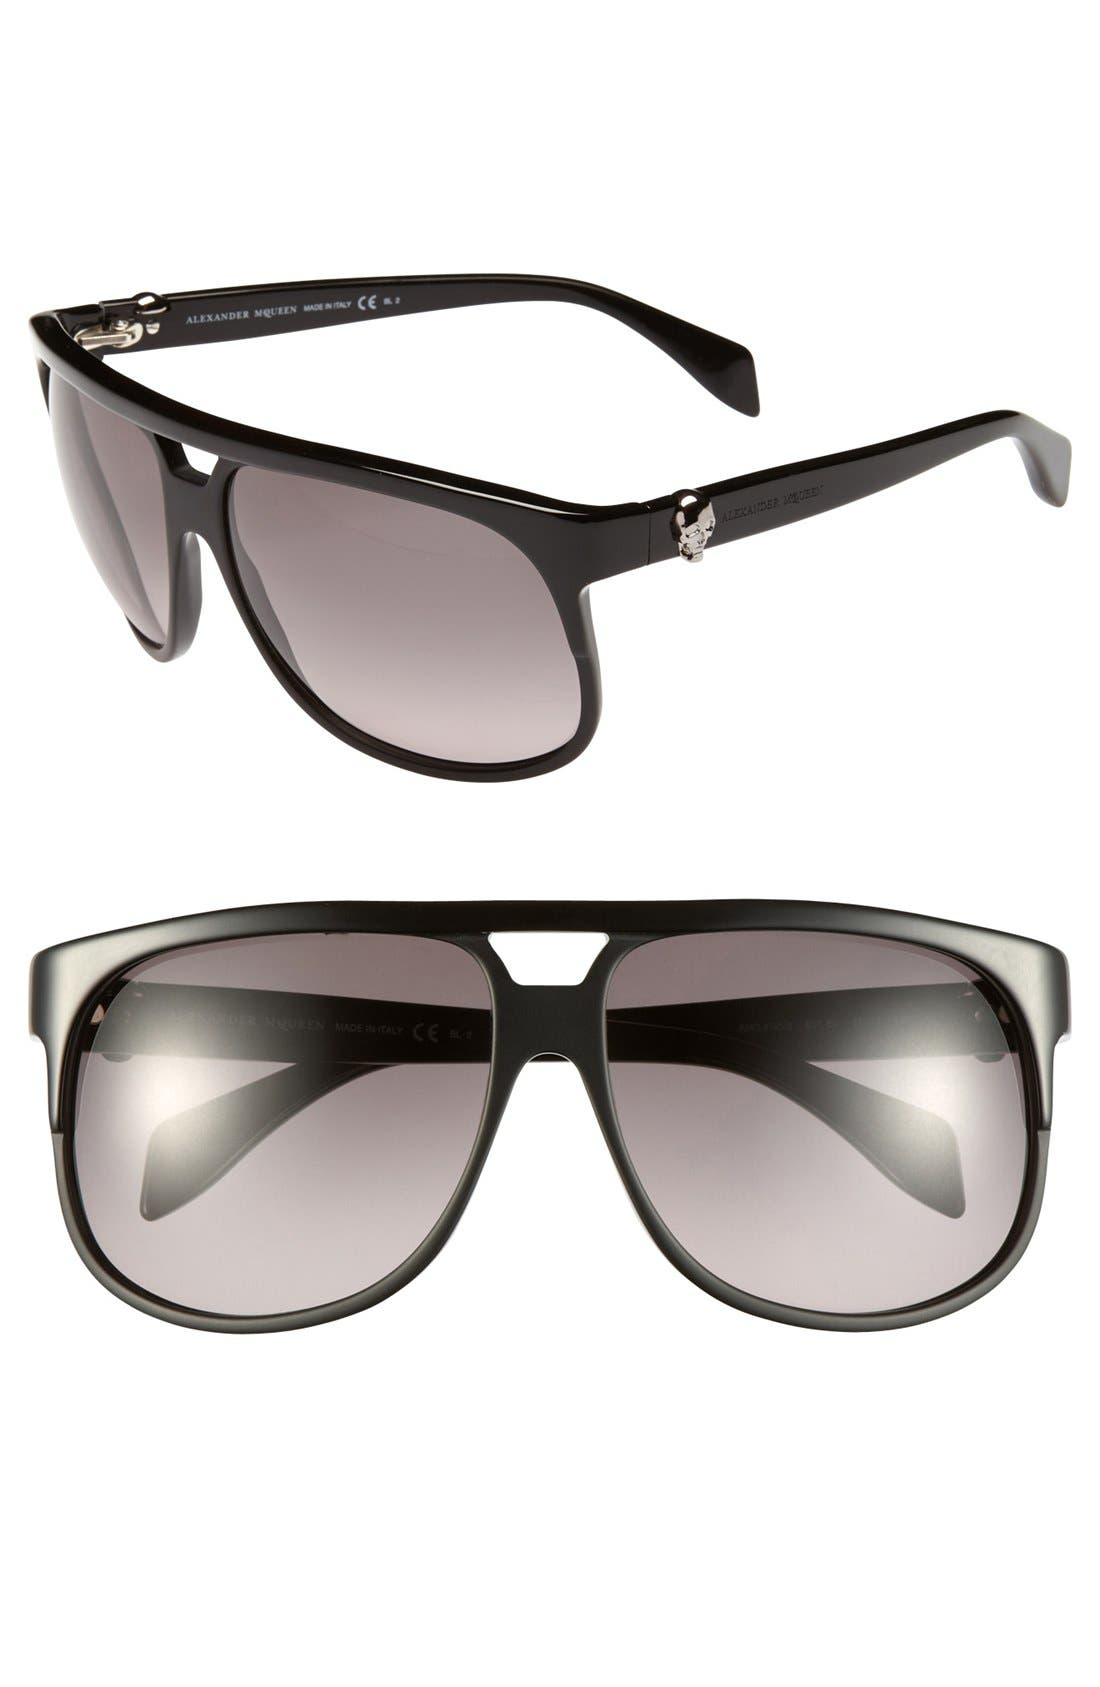 Alternate Image 1 Selected - Alexander McQueen 60mm Retro Sunglasses